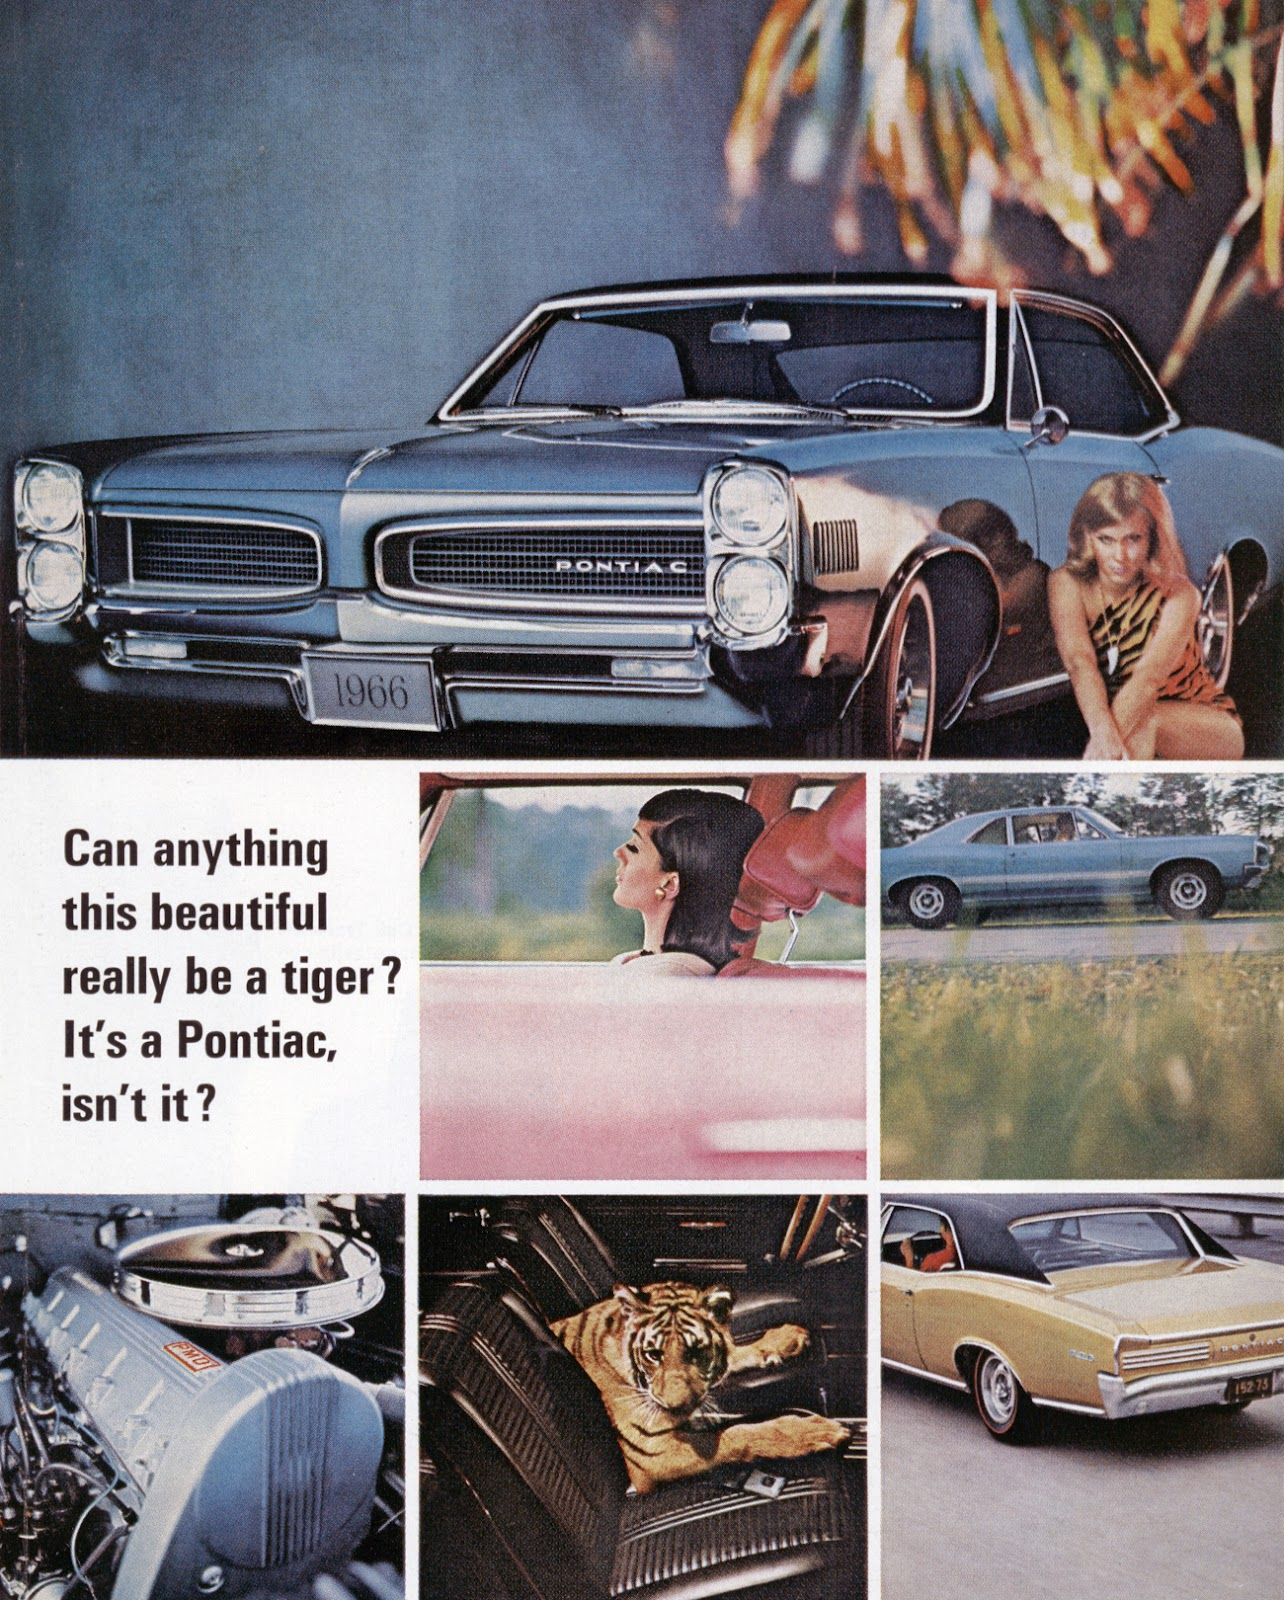 Promofile Crouching Tiger Hidden Burnoutsgto Ads In The 1960s 1960 Pontiac Catalina Wiring Diagrams First One Featured A Turquoise Tempest With Black Vinyl Roof And Blonde Wearing Striped Bathing Suit Posed Beside Car Feline Manner